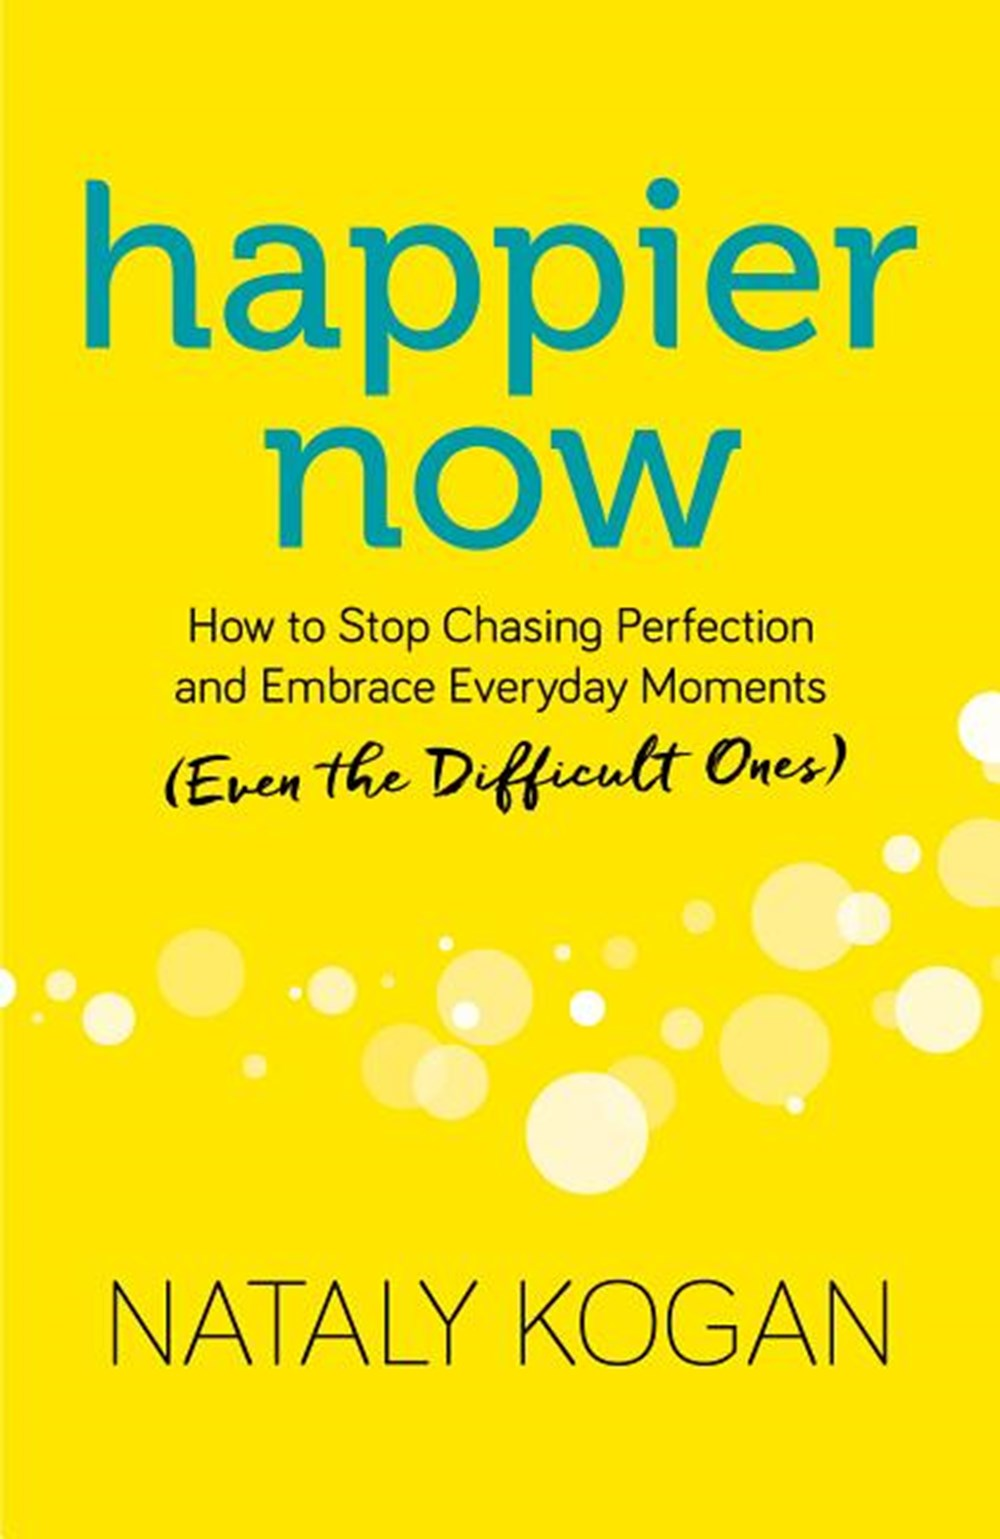 Happier Now How to Stop Chasing Perfection and Embrace Everyday Moments (Even the Difficult Ones)